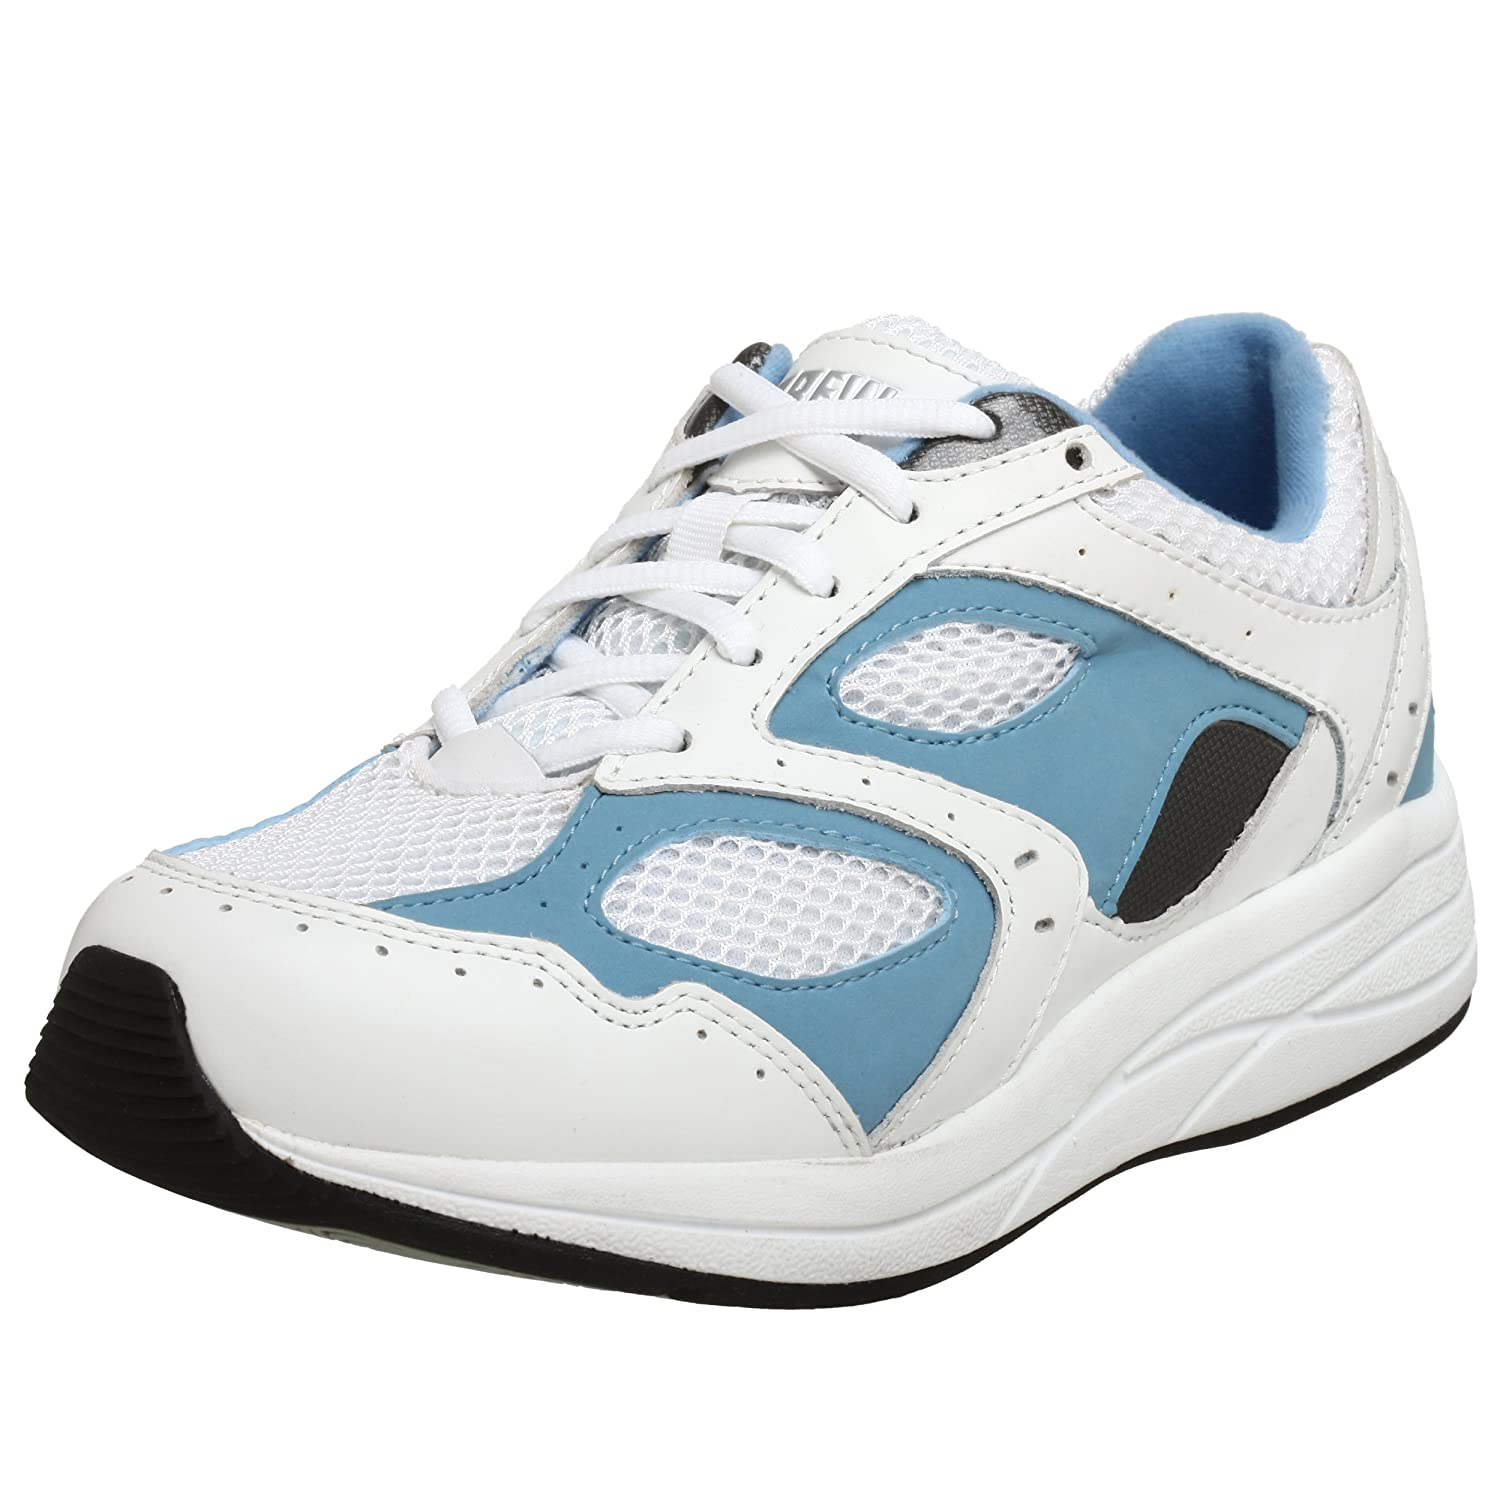 Drew Shoe Women's Flare Walking Shoe B001ATTMTU 6 XW US|White/Blue